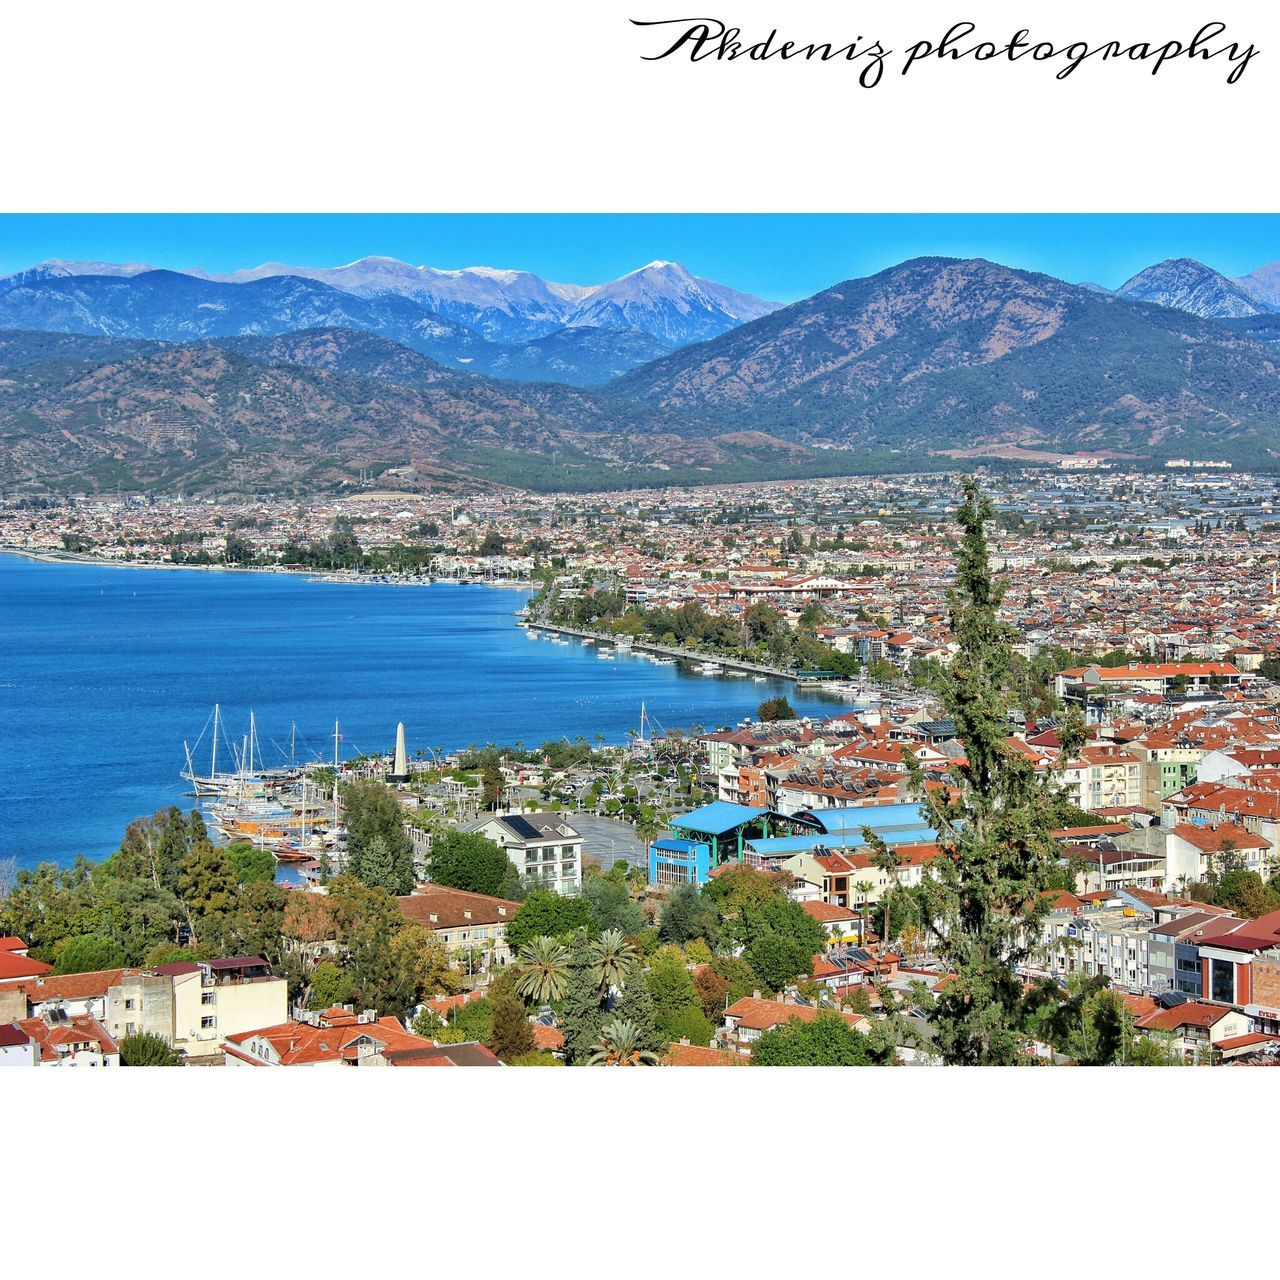 mountain, building exterior, built structure, architecture, town, residential district, house, mountain range, residential building, water, high angle view, day, nature, scenics, no people, sea, outdoors, clear sky, beauty in nature, community, blue, landscape, sky, cityscape, tree, city, view into land